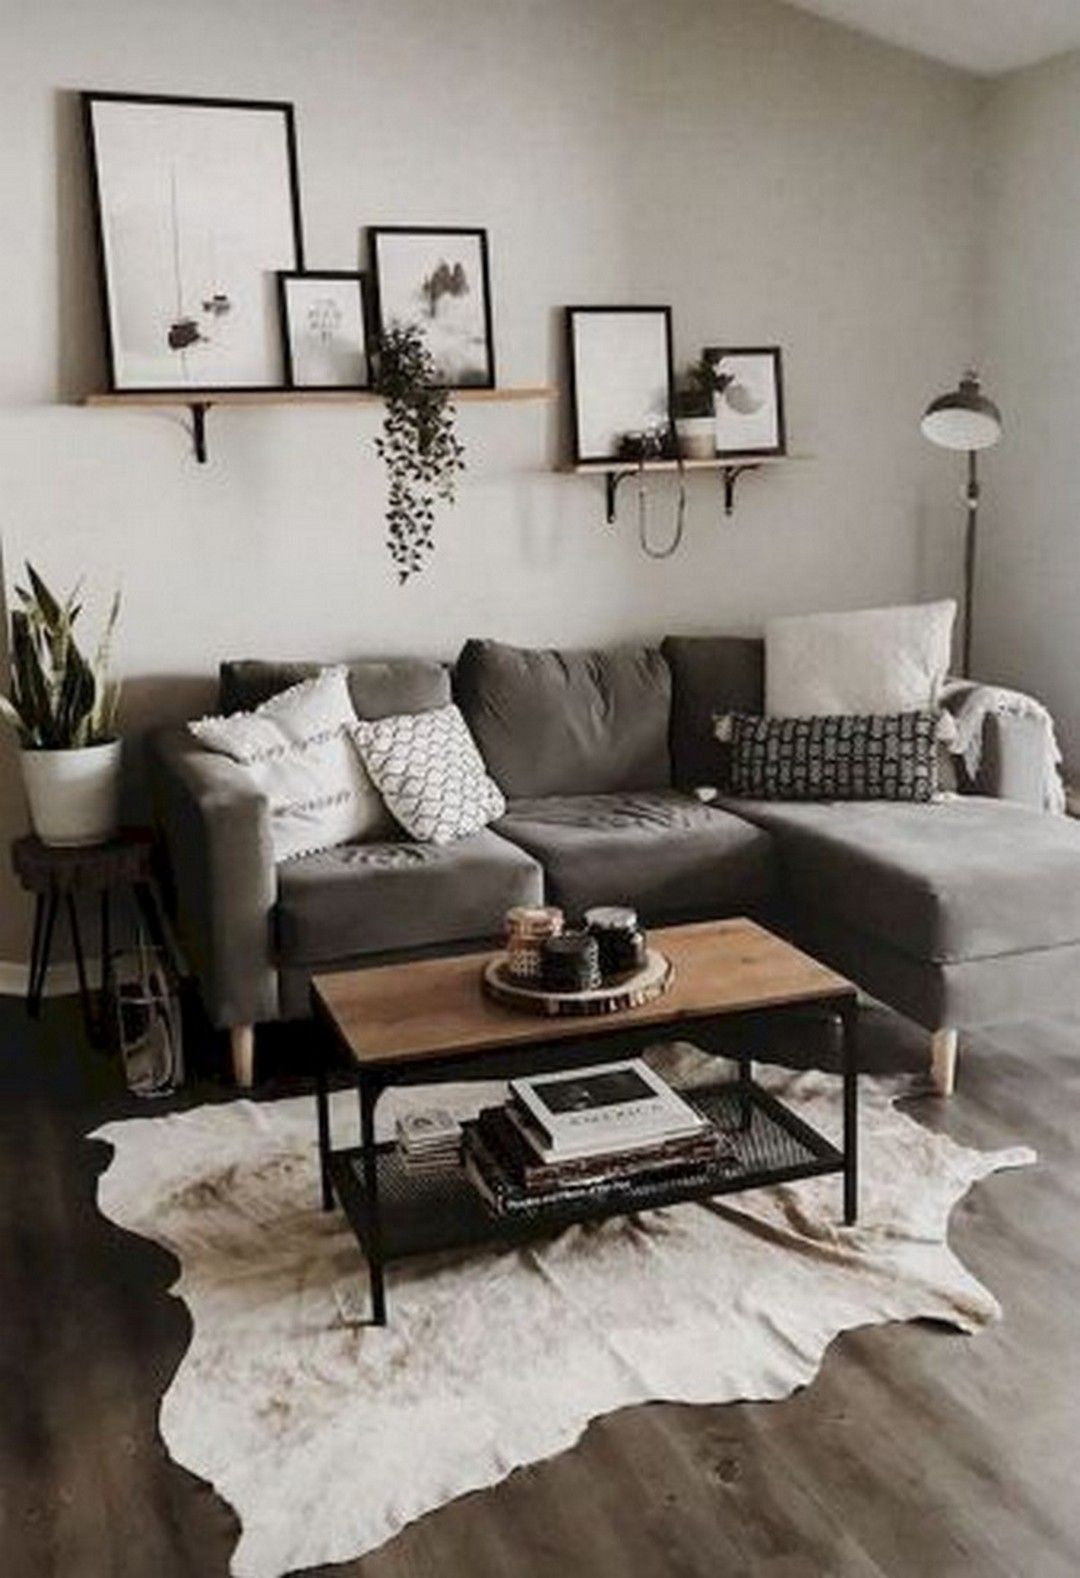 51 Neutral Living Room Ideas - Earthy Gray Living Rooms To Copy images